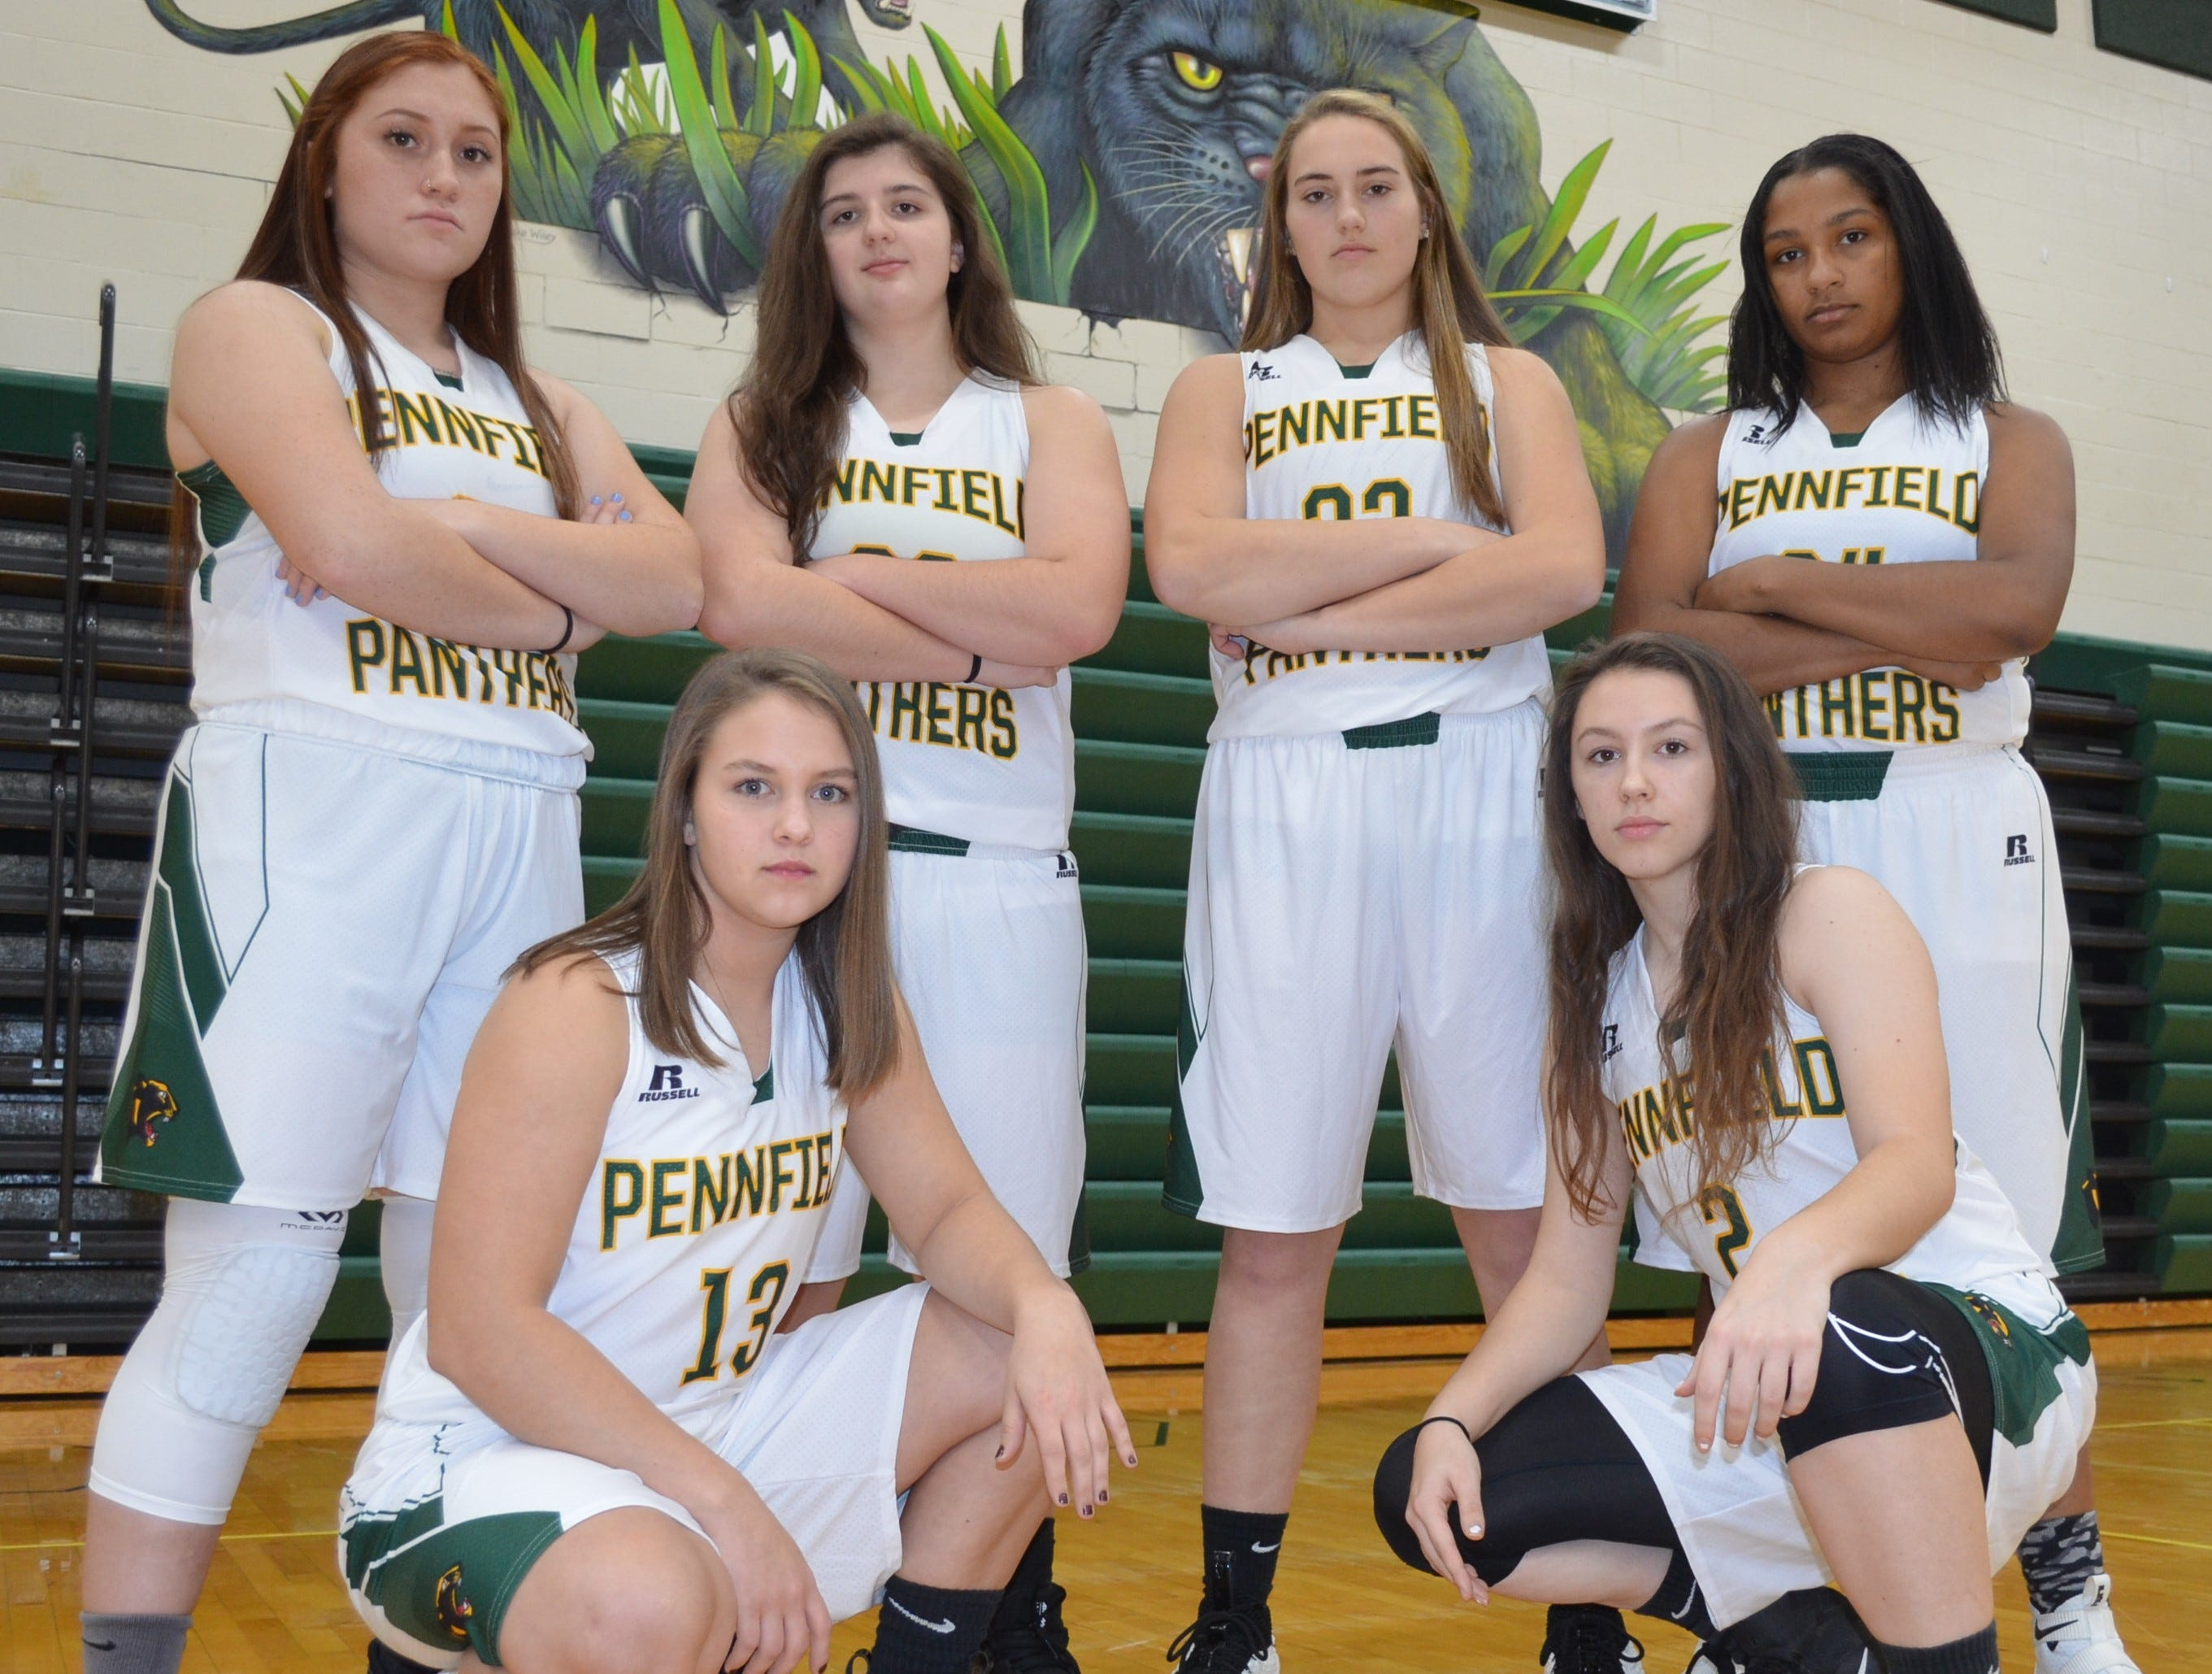 The returning leaders for the Pennfield girls basketball team, include, back row, from left, Adriana Fuentes-Miller, Shayna Hanker, Alicia Lake, Ayanna Gauna. Front row, Logan Striplin, Alissa Coughlin